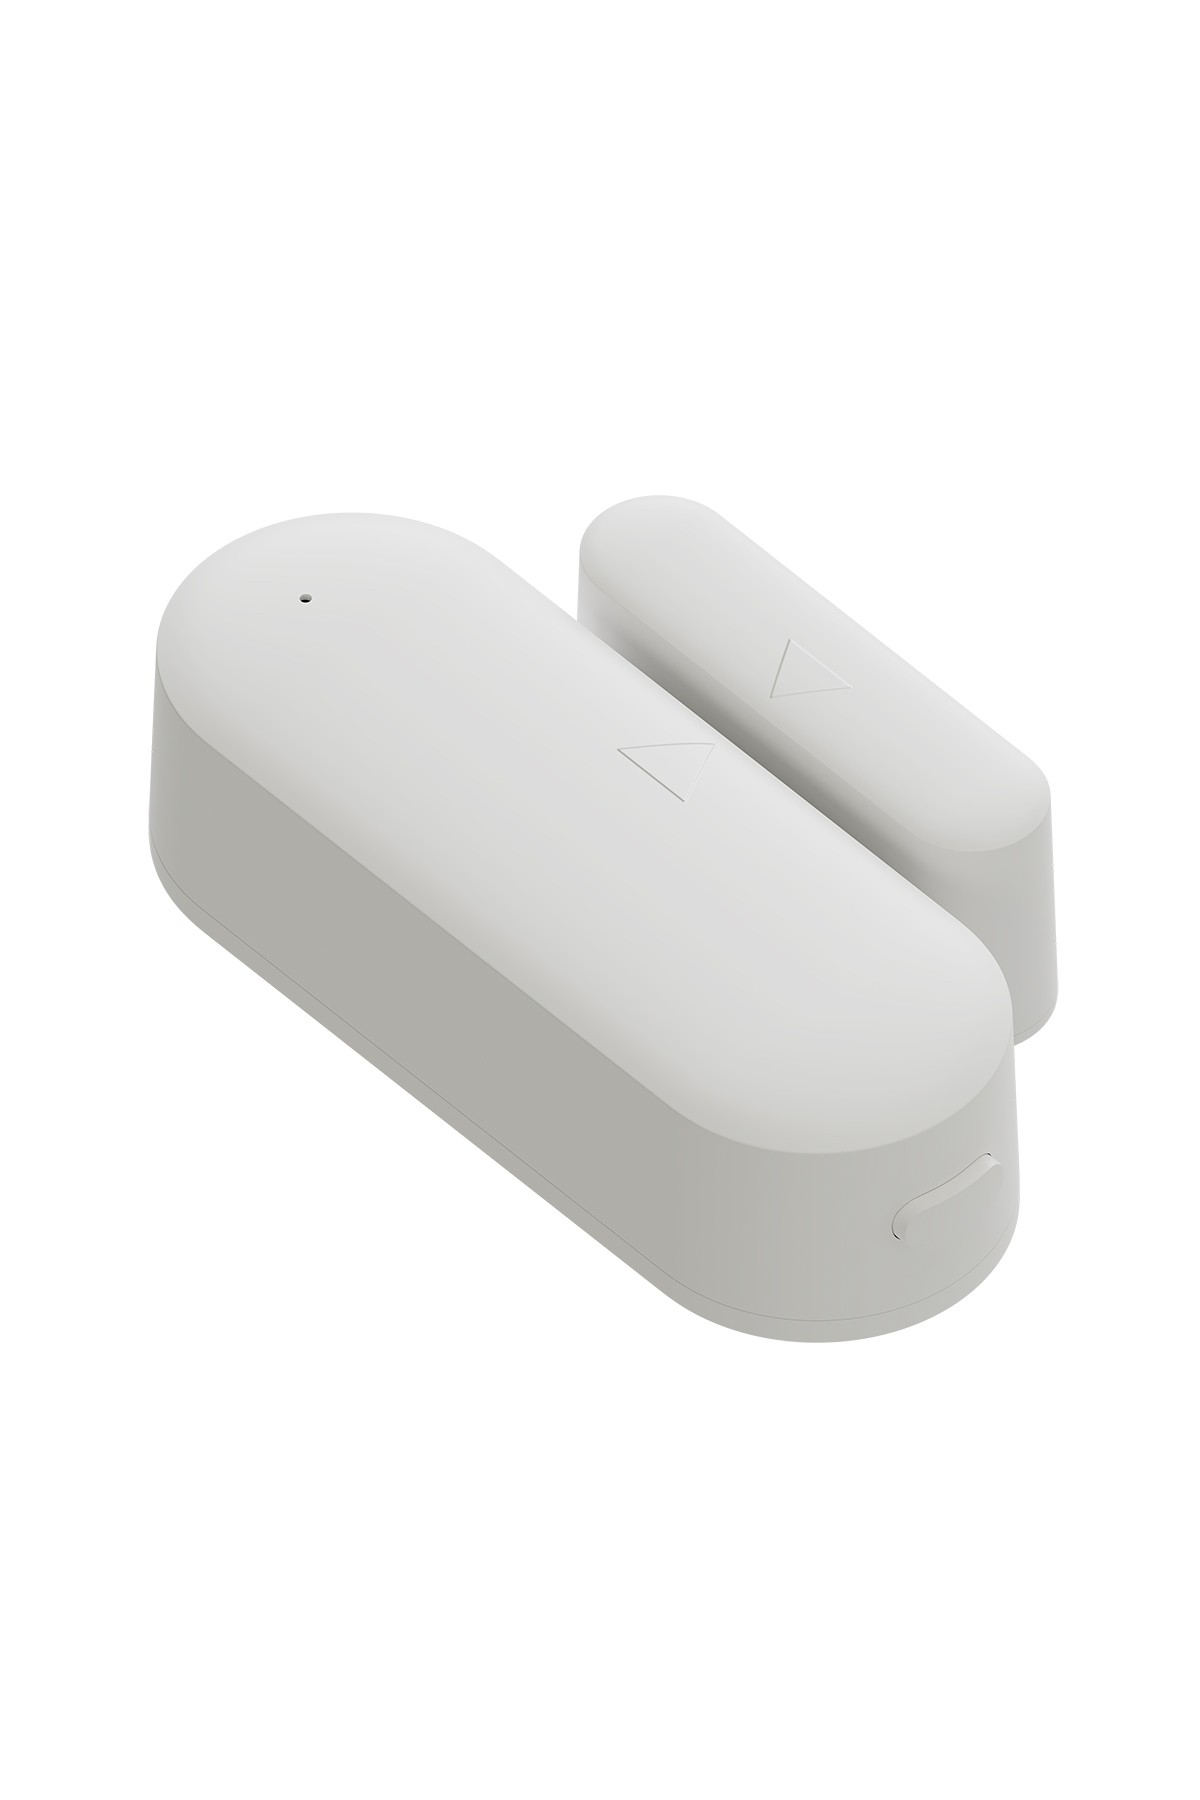 Calex Smart Deur/Window Sensor